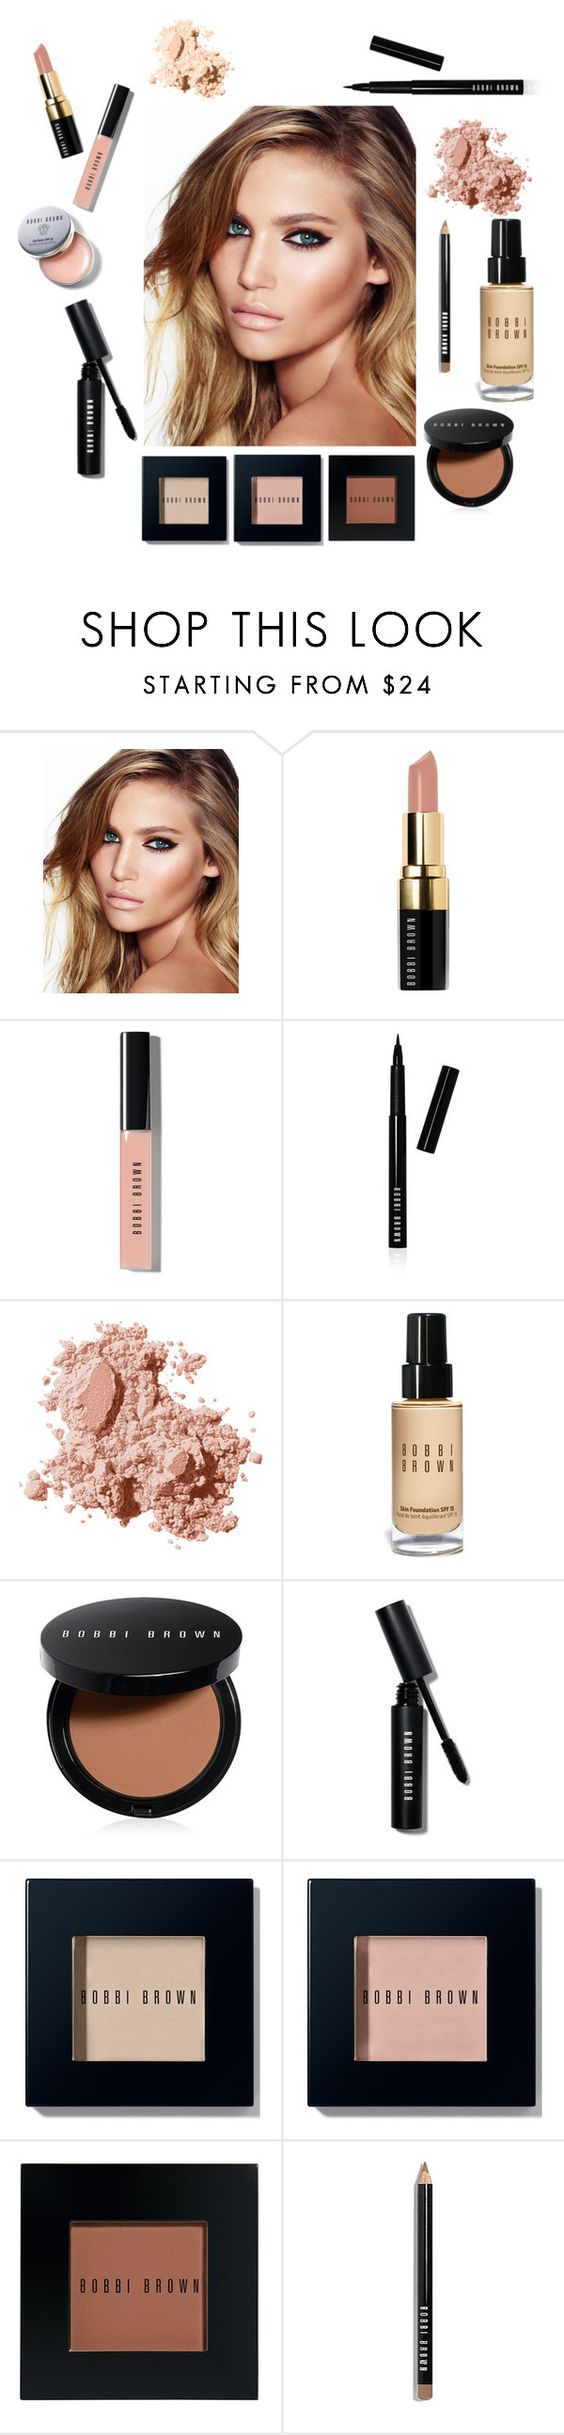 """Bobbi Brown Glow Look"" by mckenziemeland ❤ liked on Polyvore featuring beauty, Charlotte Tilbury, Bobbi Brown Cosmetics, Beauty, pretty, peach and makeup"